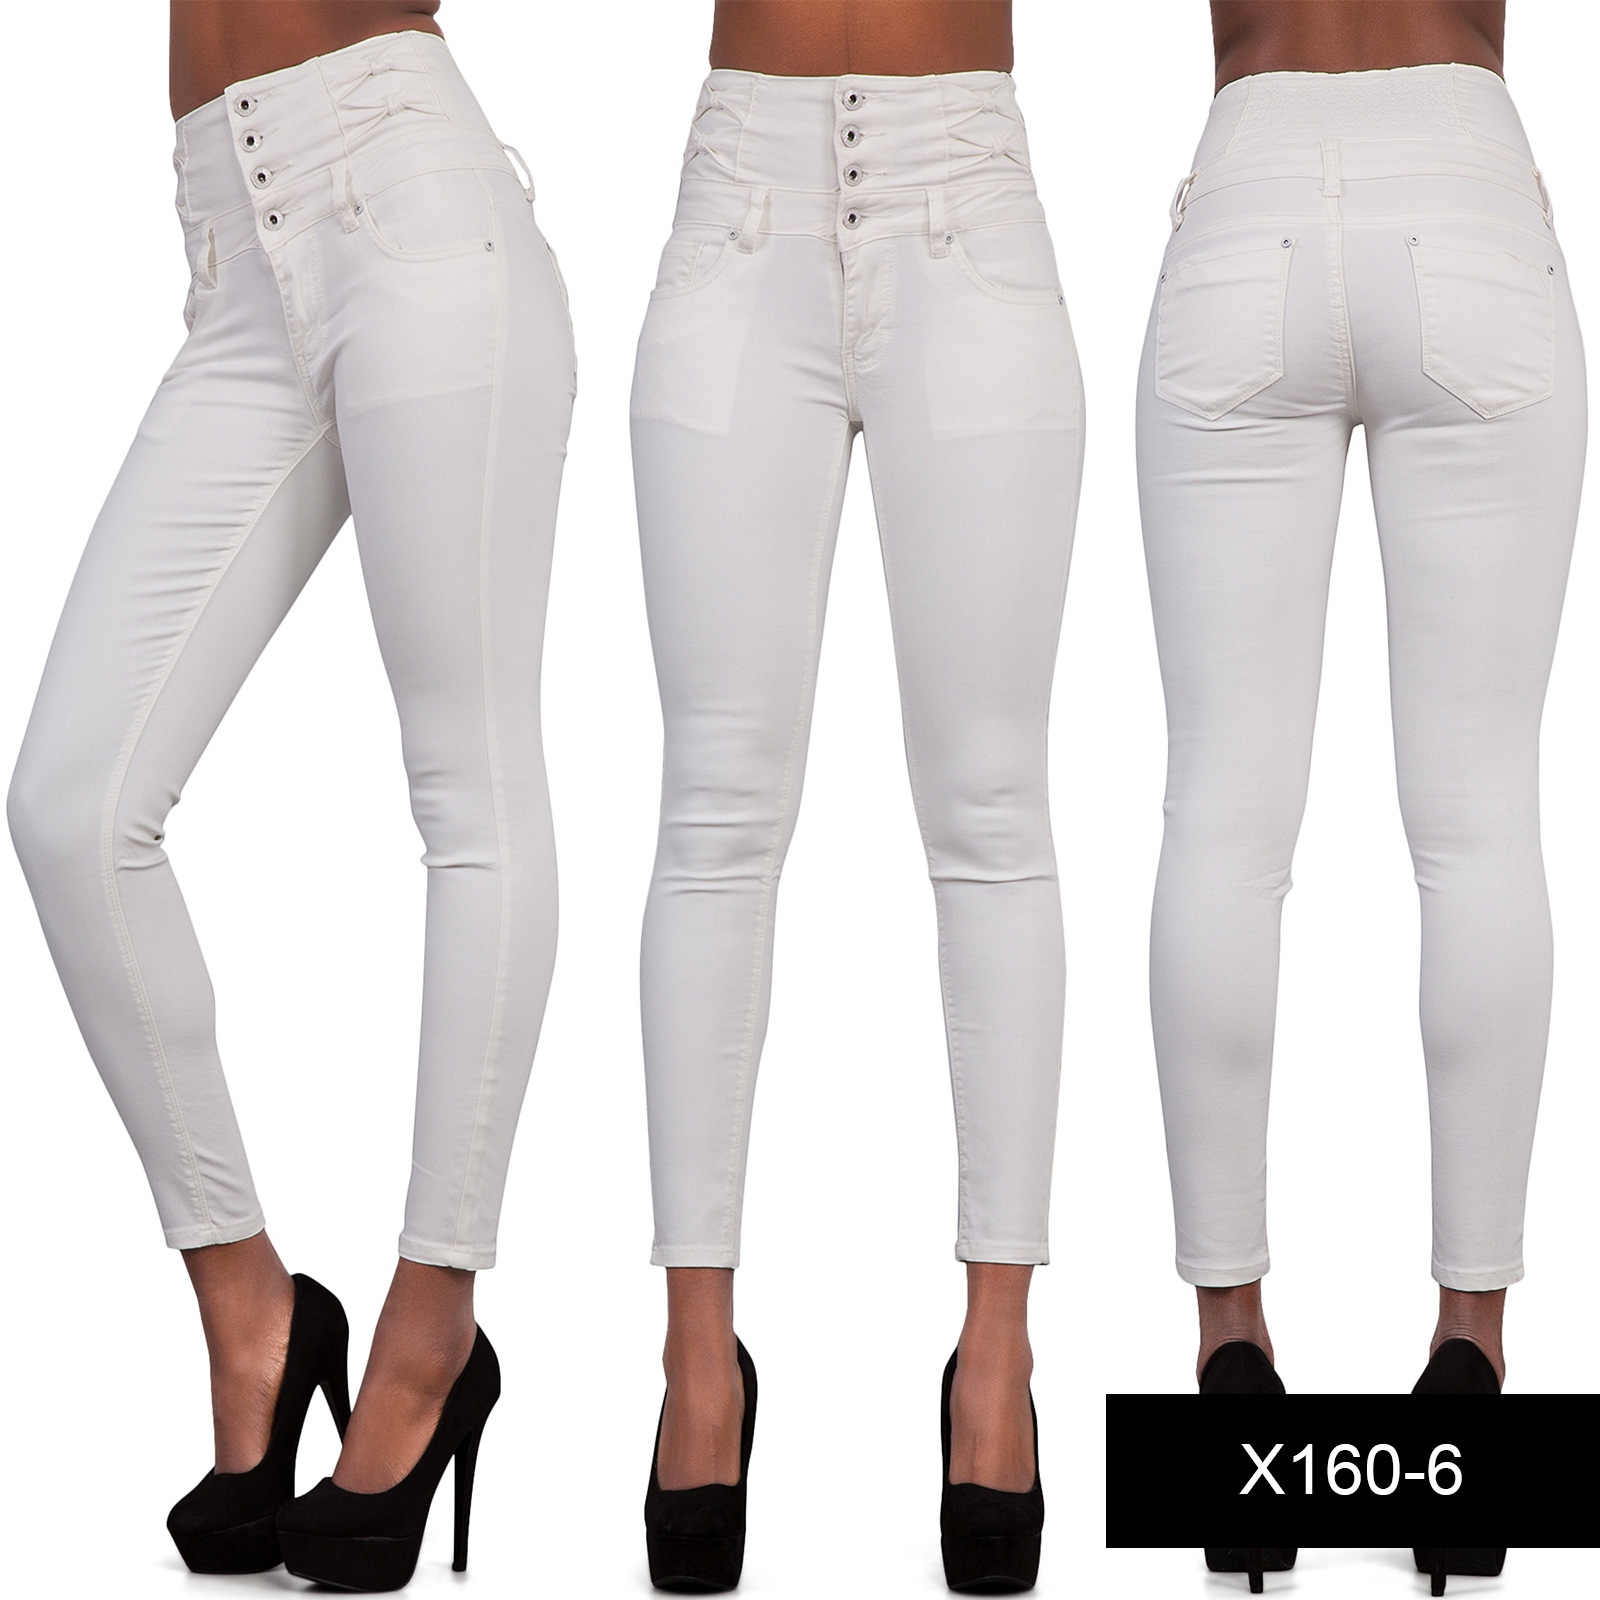 Free shipping & returns on high-waisted jeans for women at northtercessbudh.cf Shop for high waisted jeans by leg style, wash, waist size, and more from top brands. Free shipping and returns.